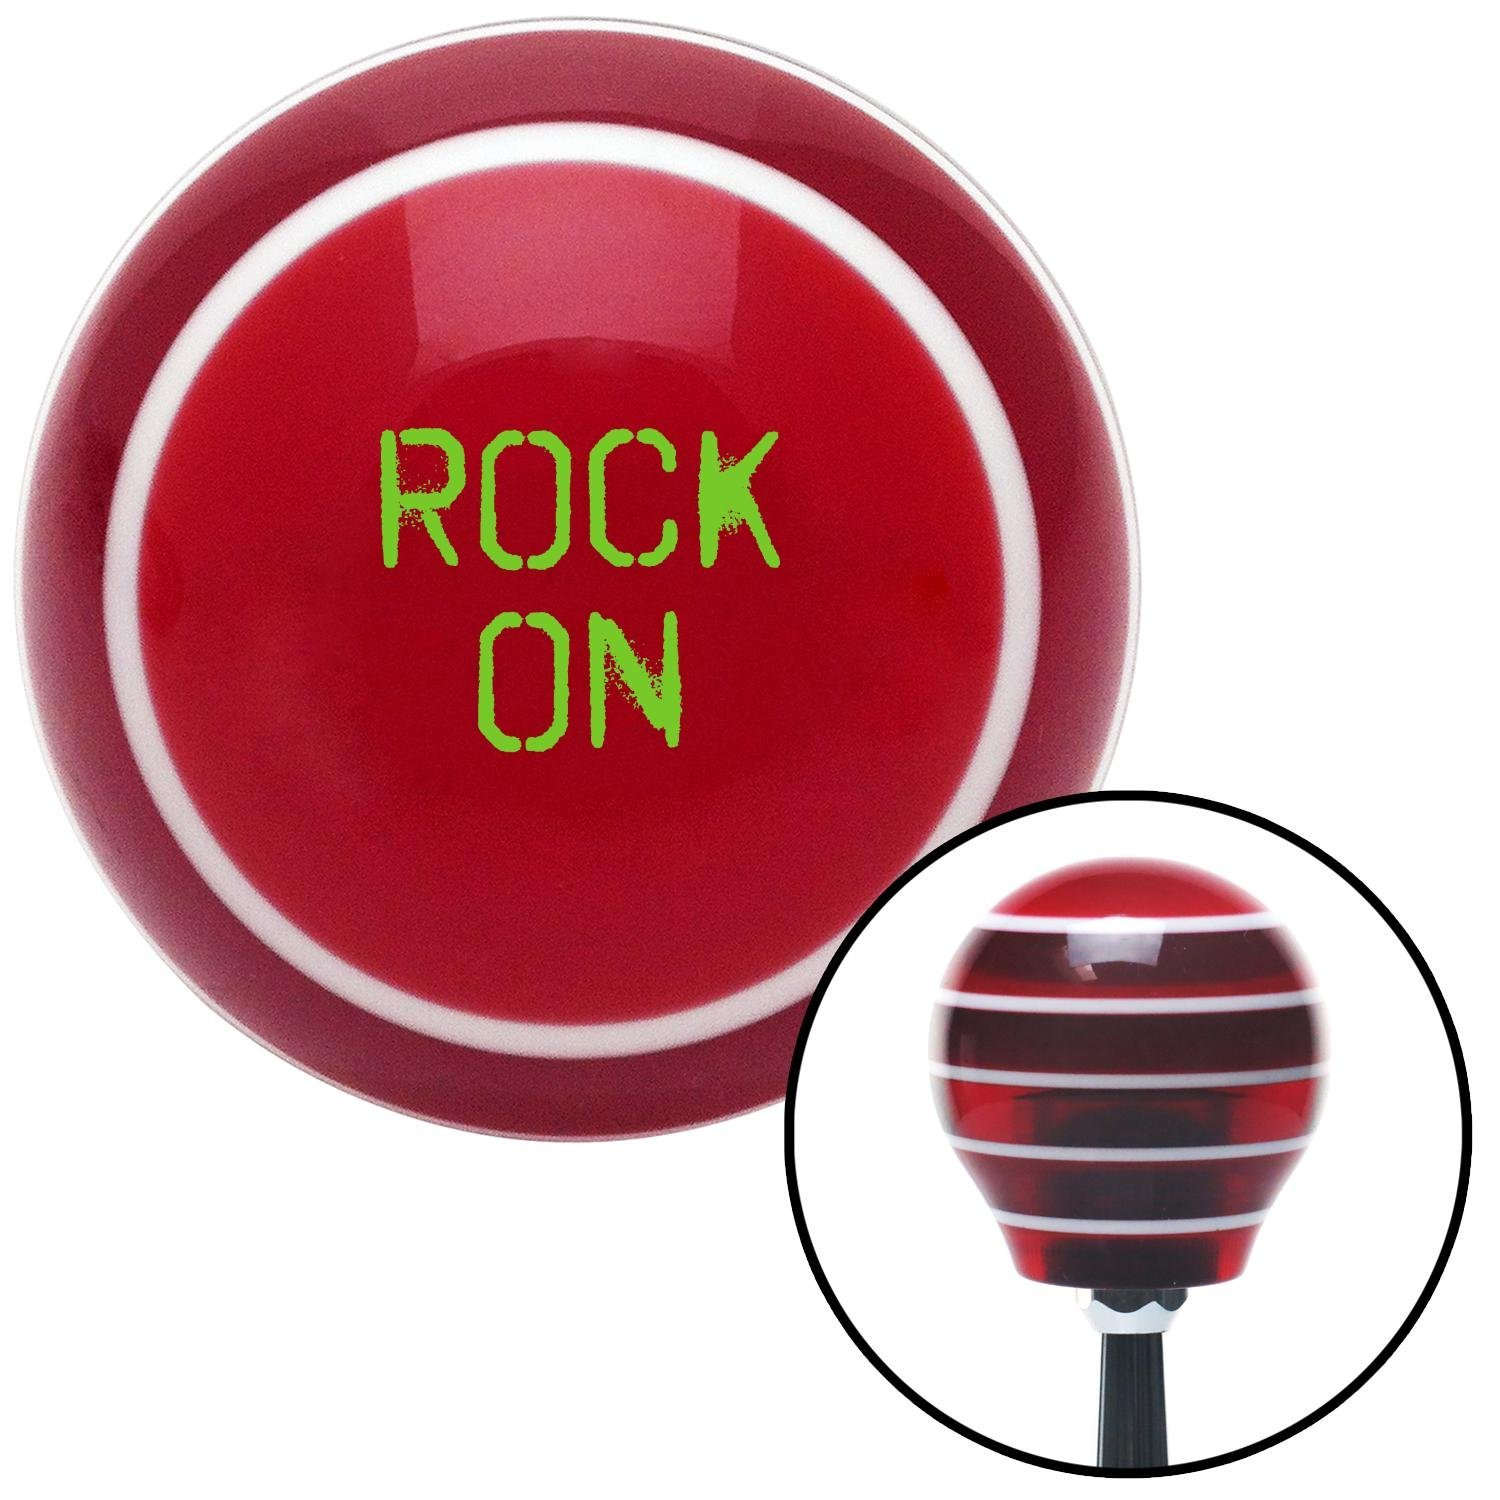 American Shifter 274624 Shift Knob Green Rock On Red Stripe with M16 x 1.5 Insert